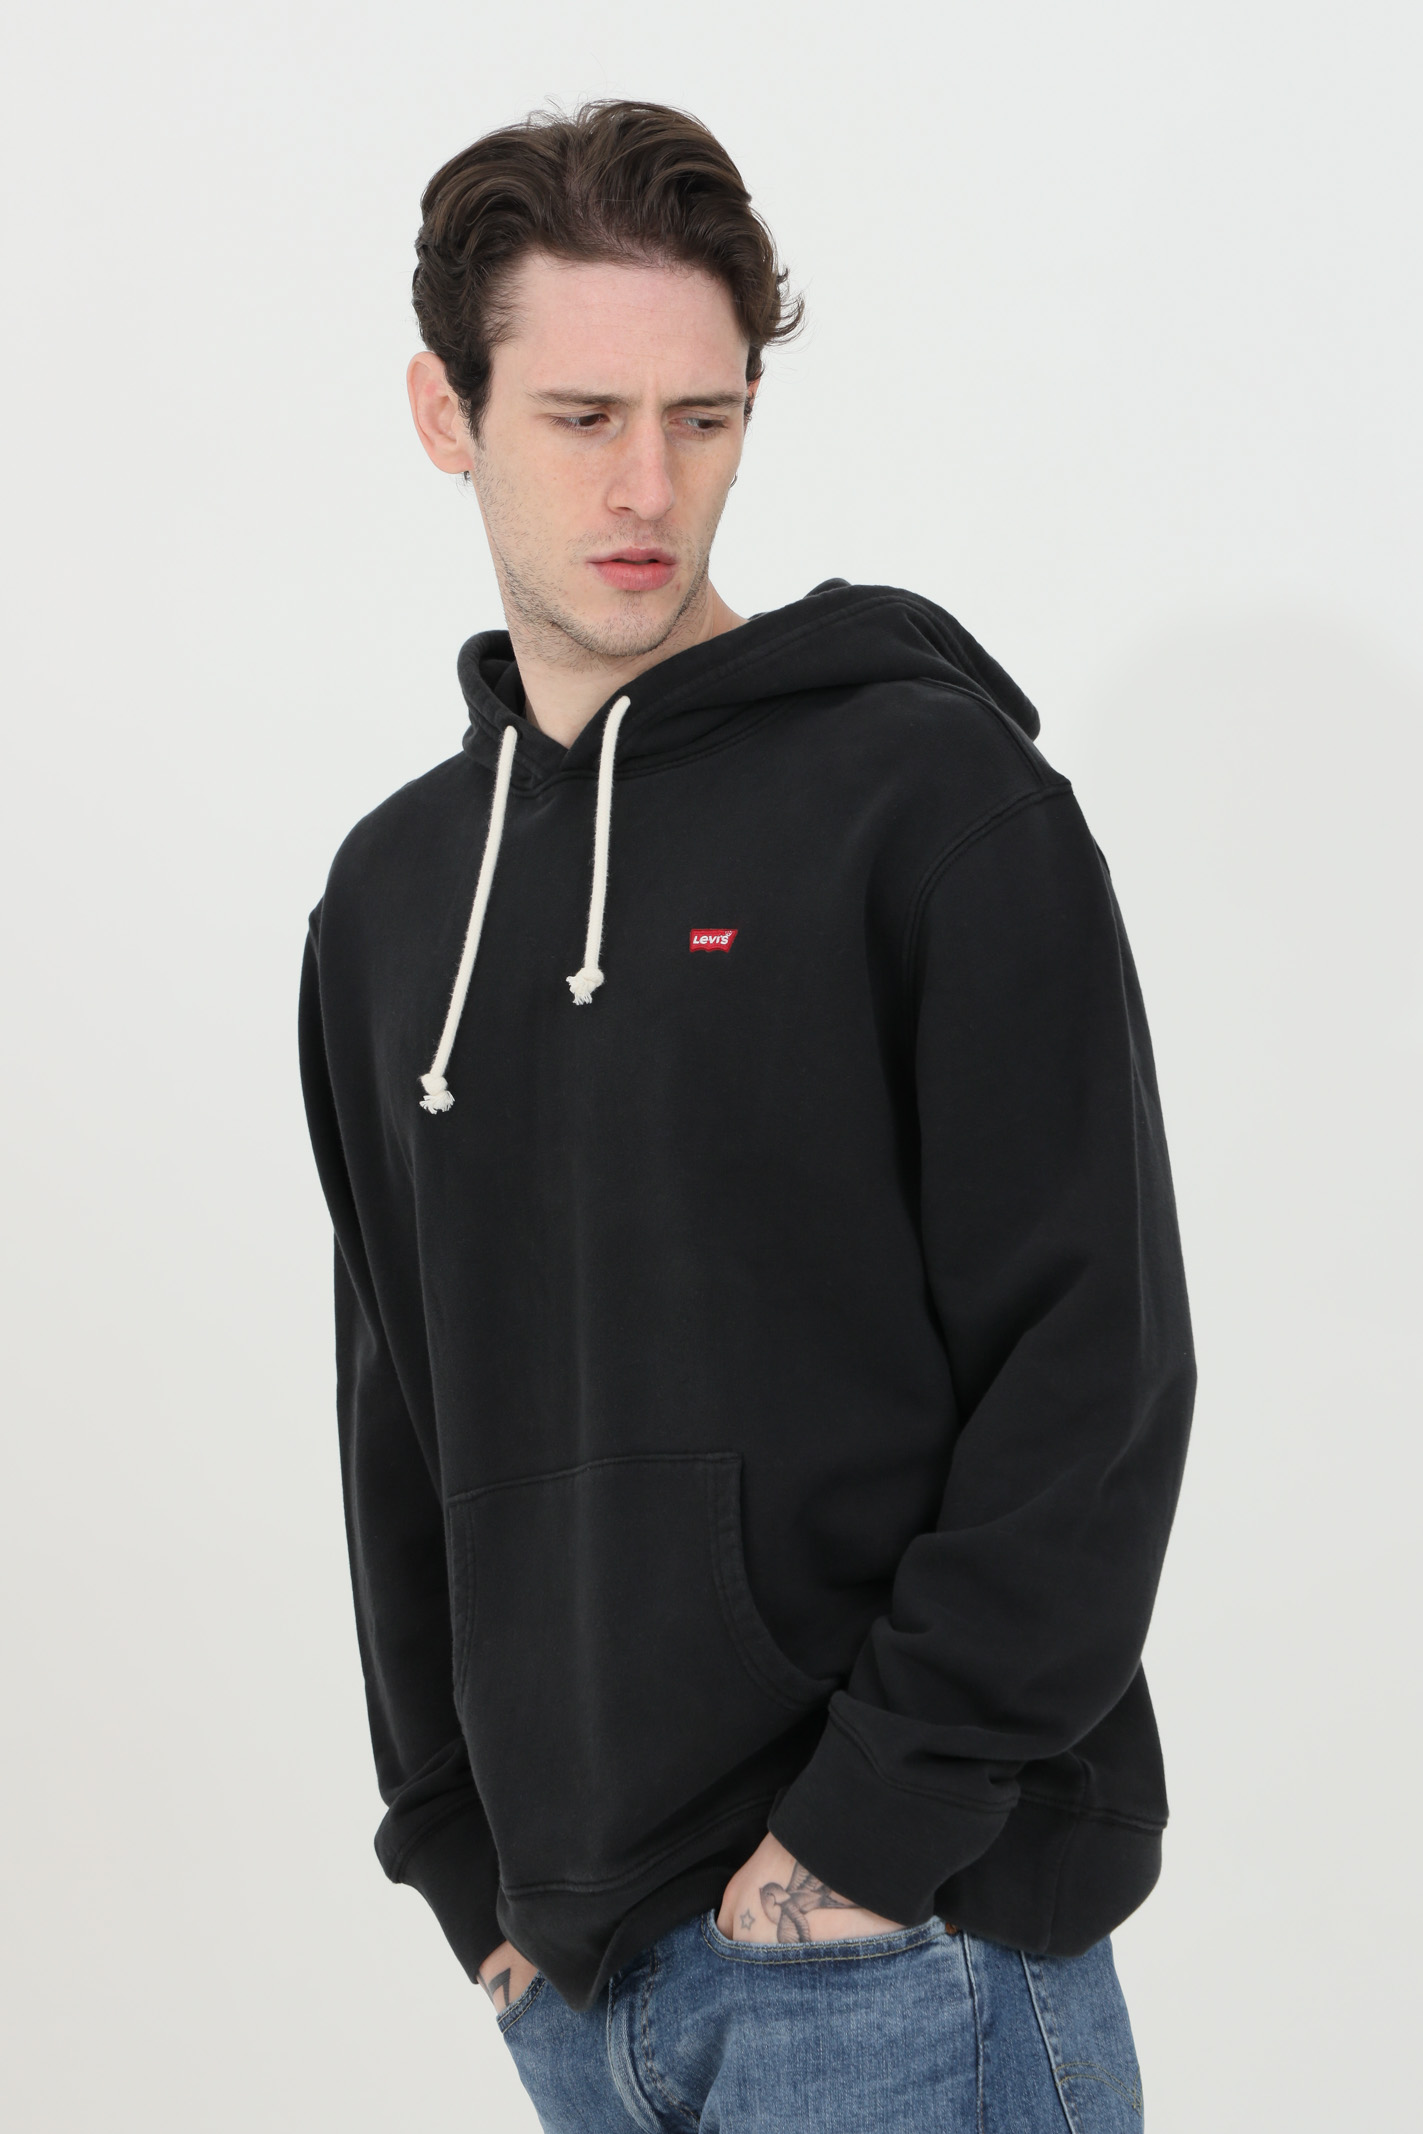 Hoodie with laces, solid color LEVI'S | Sweatshirt | 34581-00010001